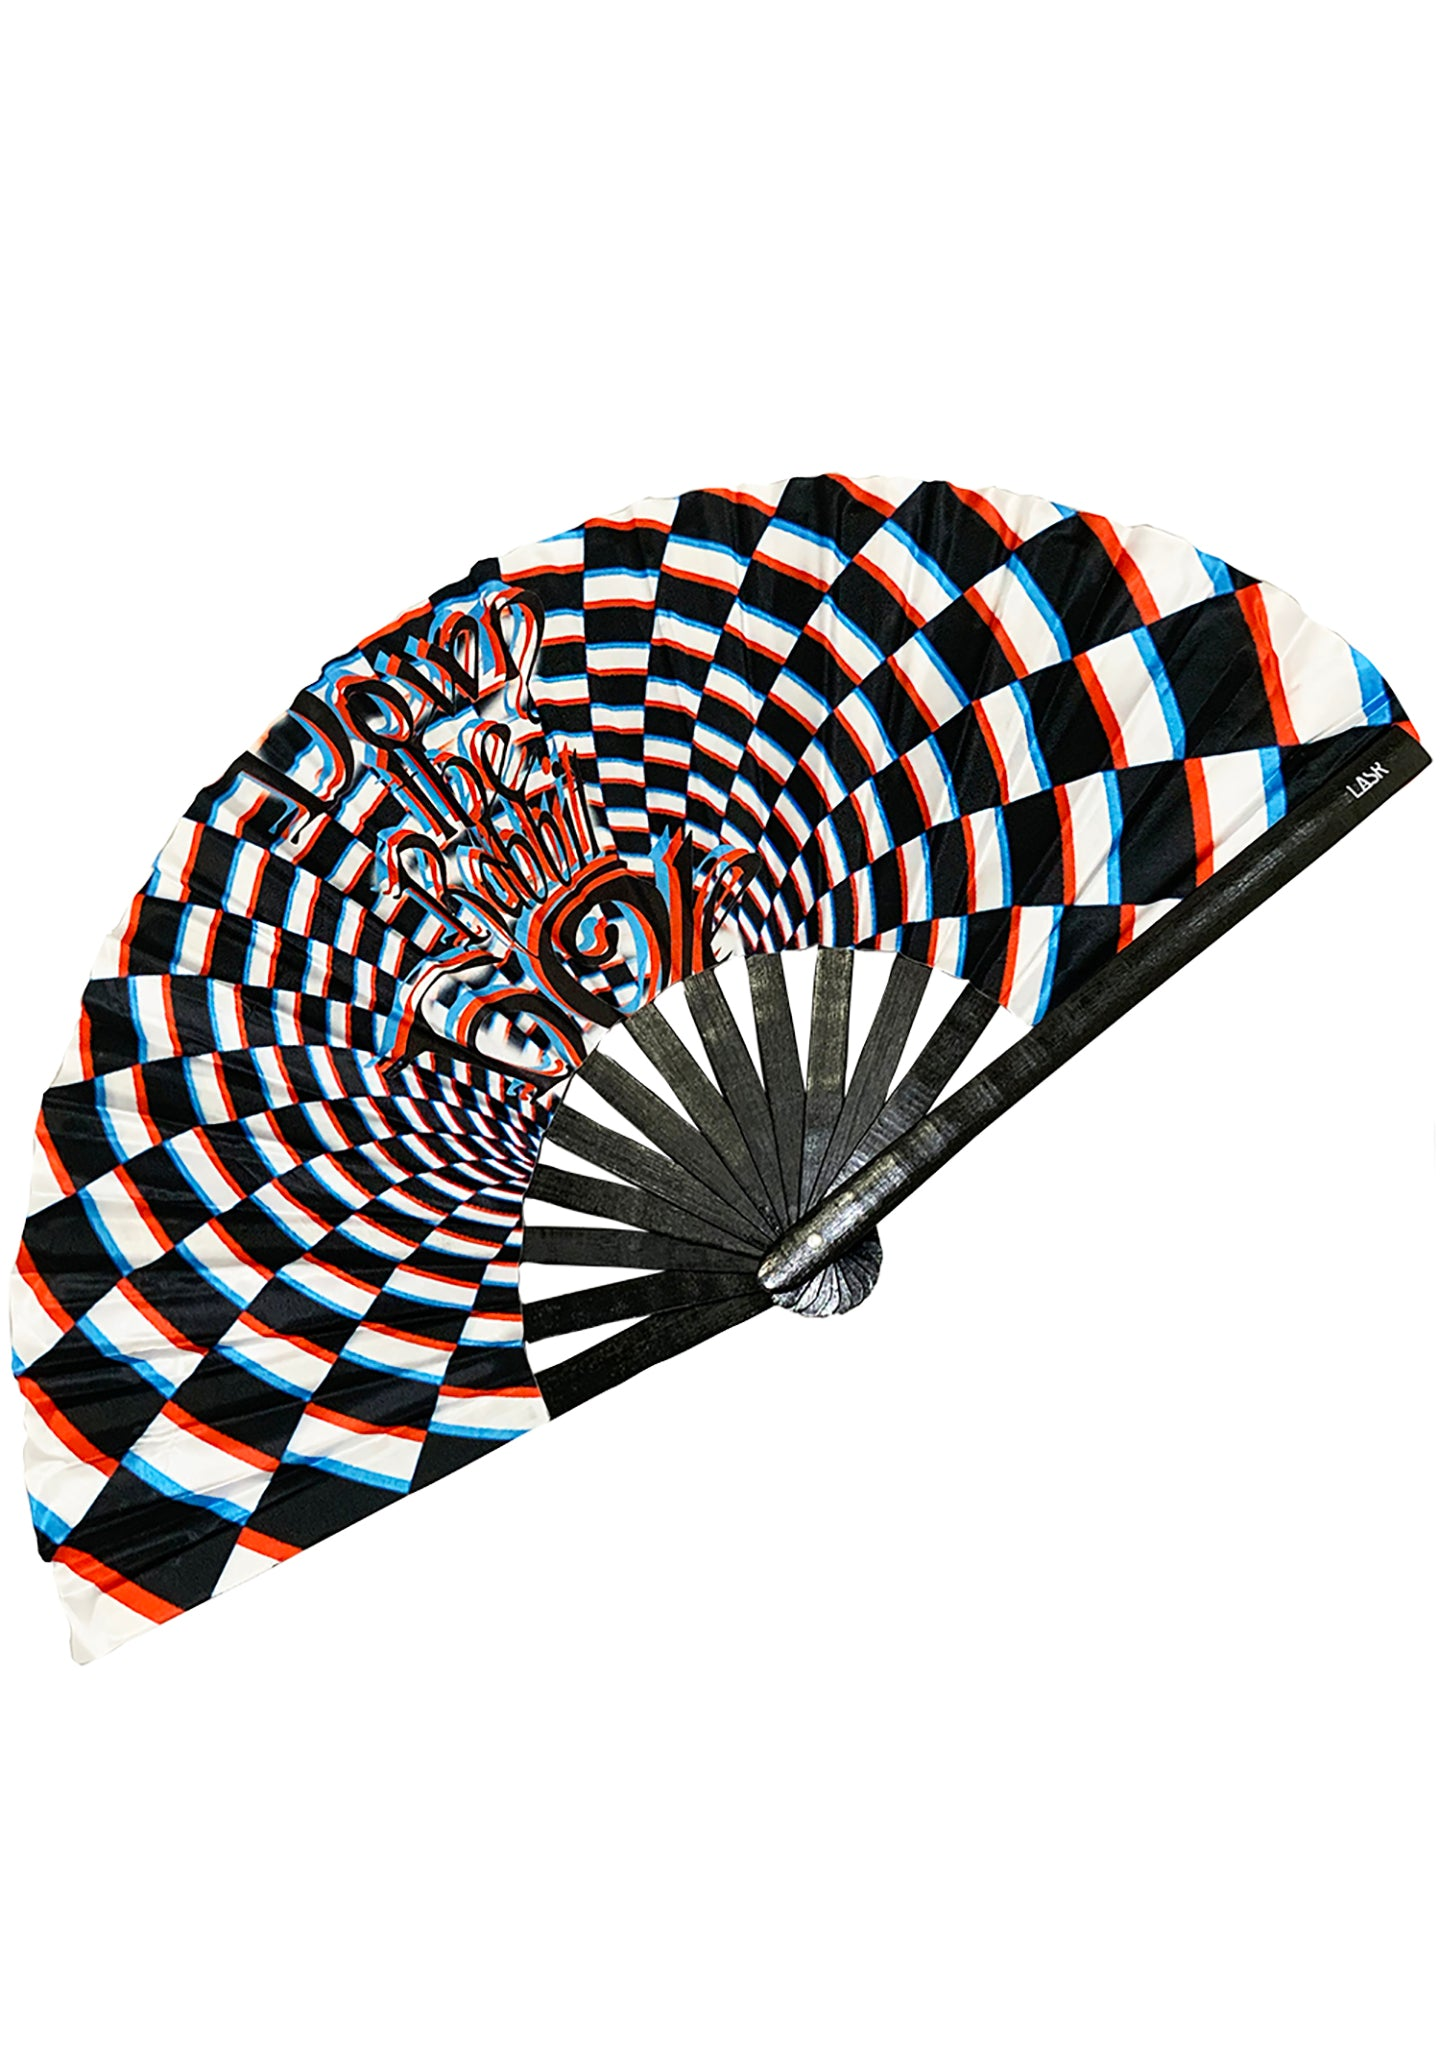 LASR Exclusive Psychedelic Rabbit Fan